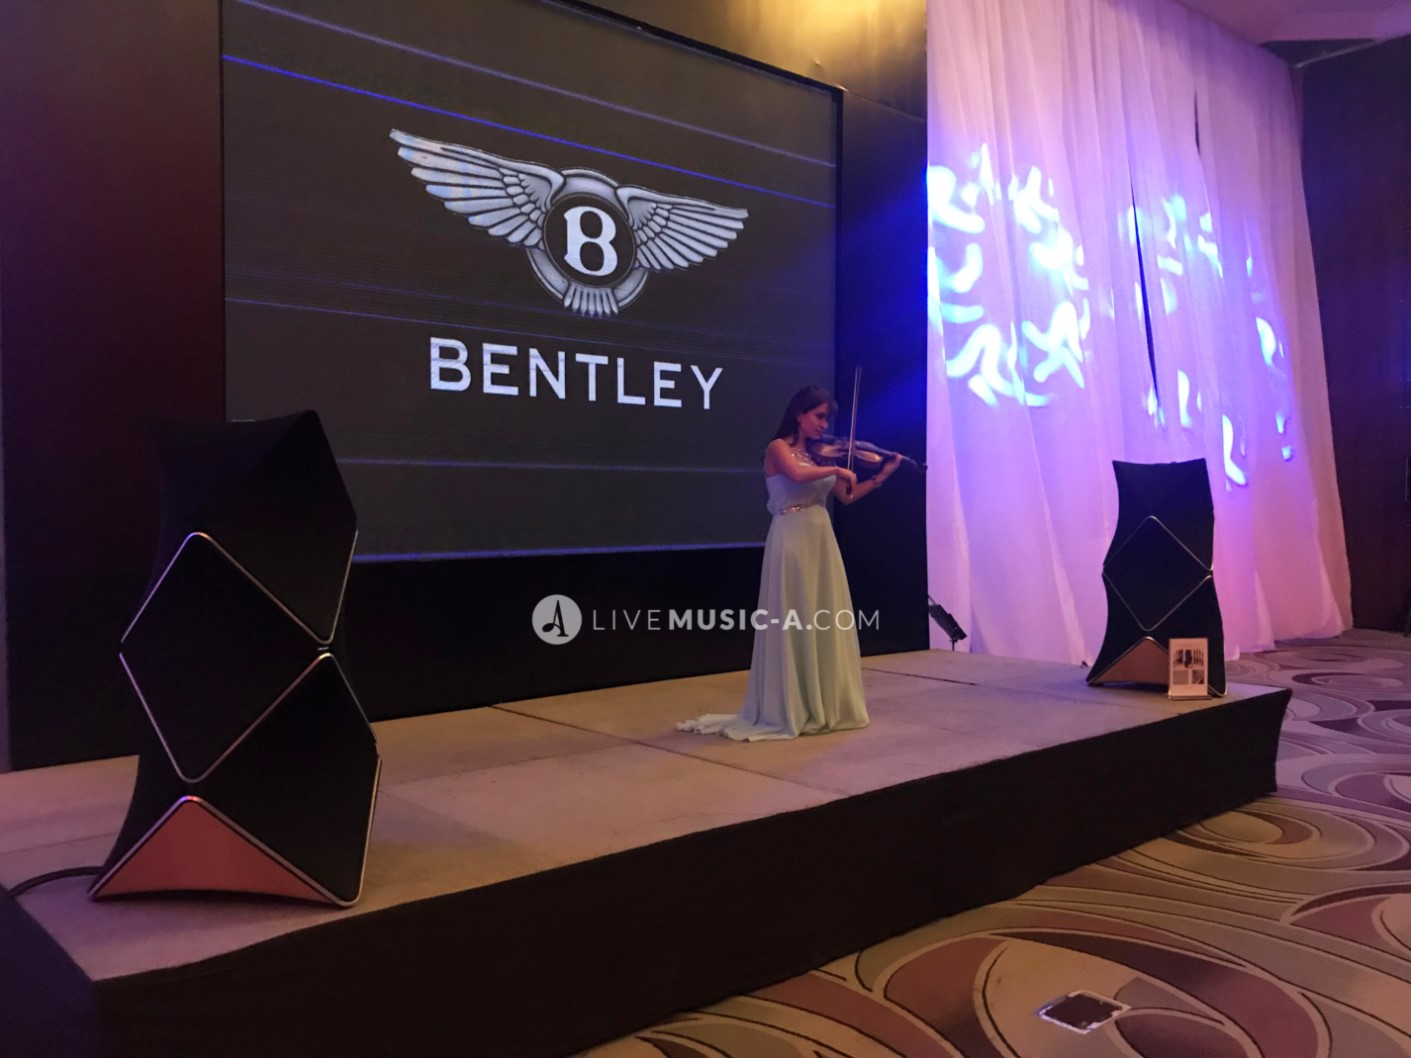 Bentley Bentayga Launching Habtour grand hotel - Hilton Hotels